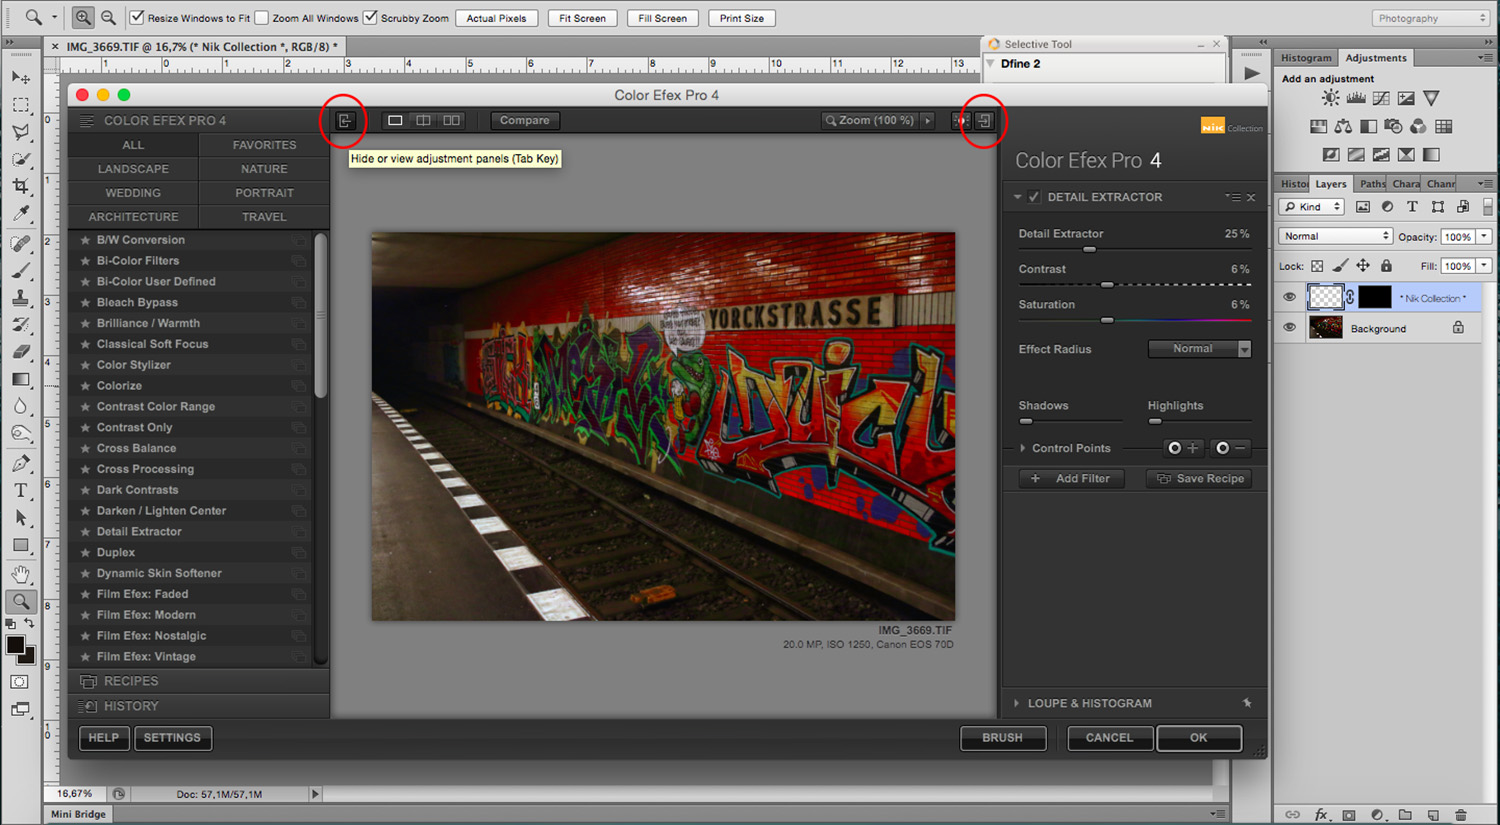 5 - How to Use the NIK Filter Collection with Photoshop - hide panels